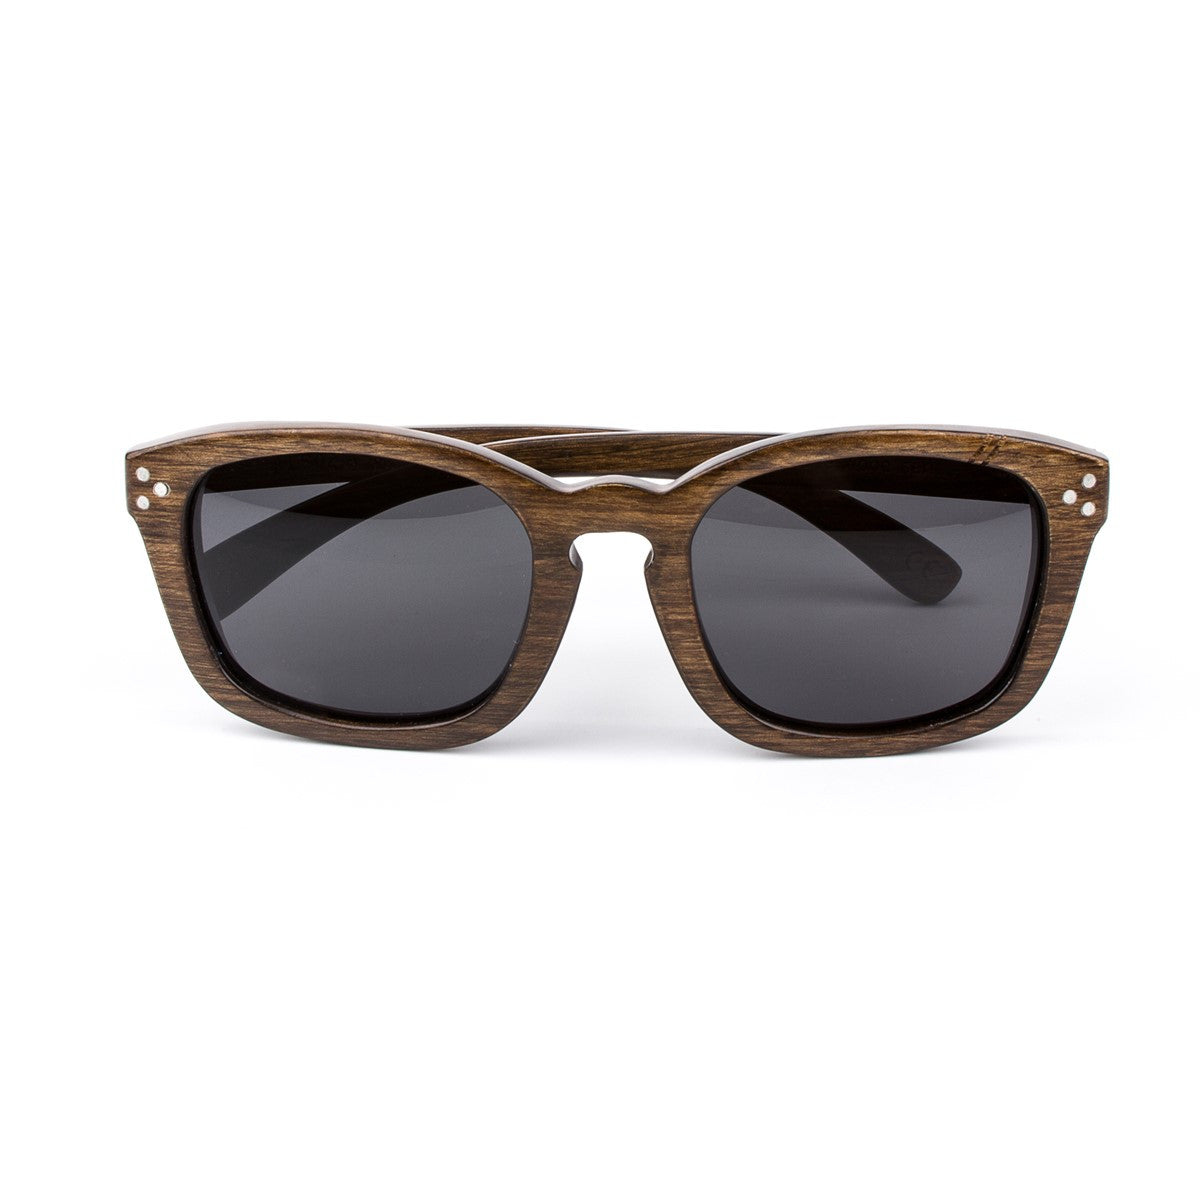 Wooden sunglasses Miss Brown